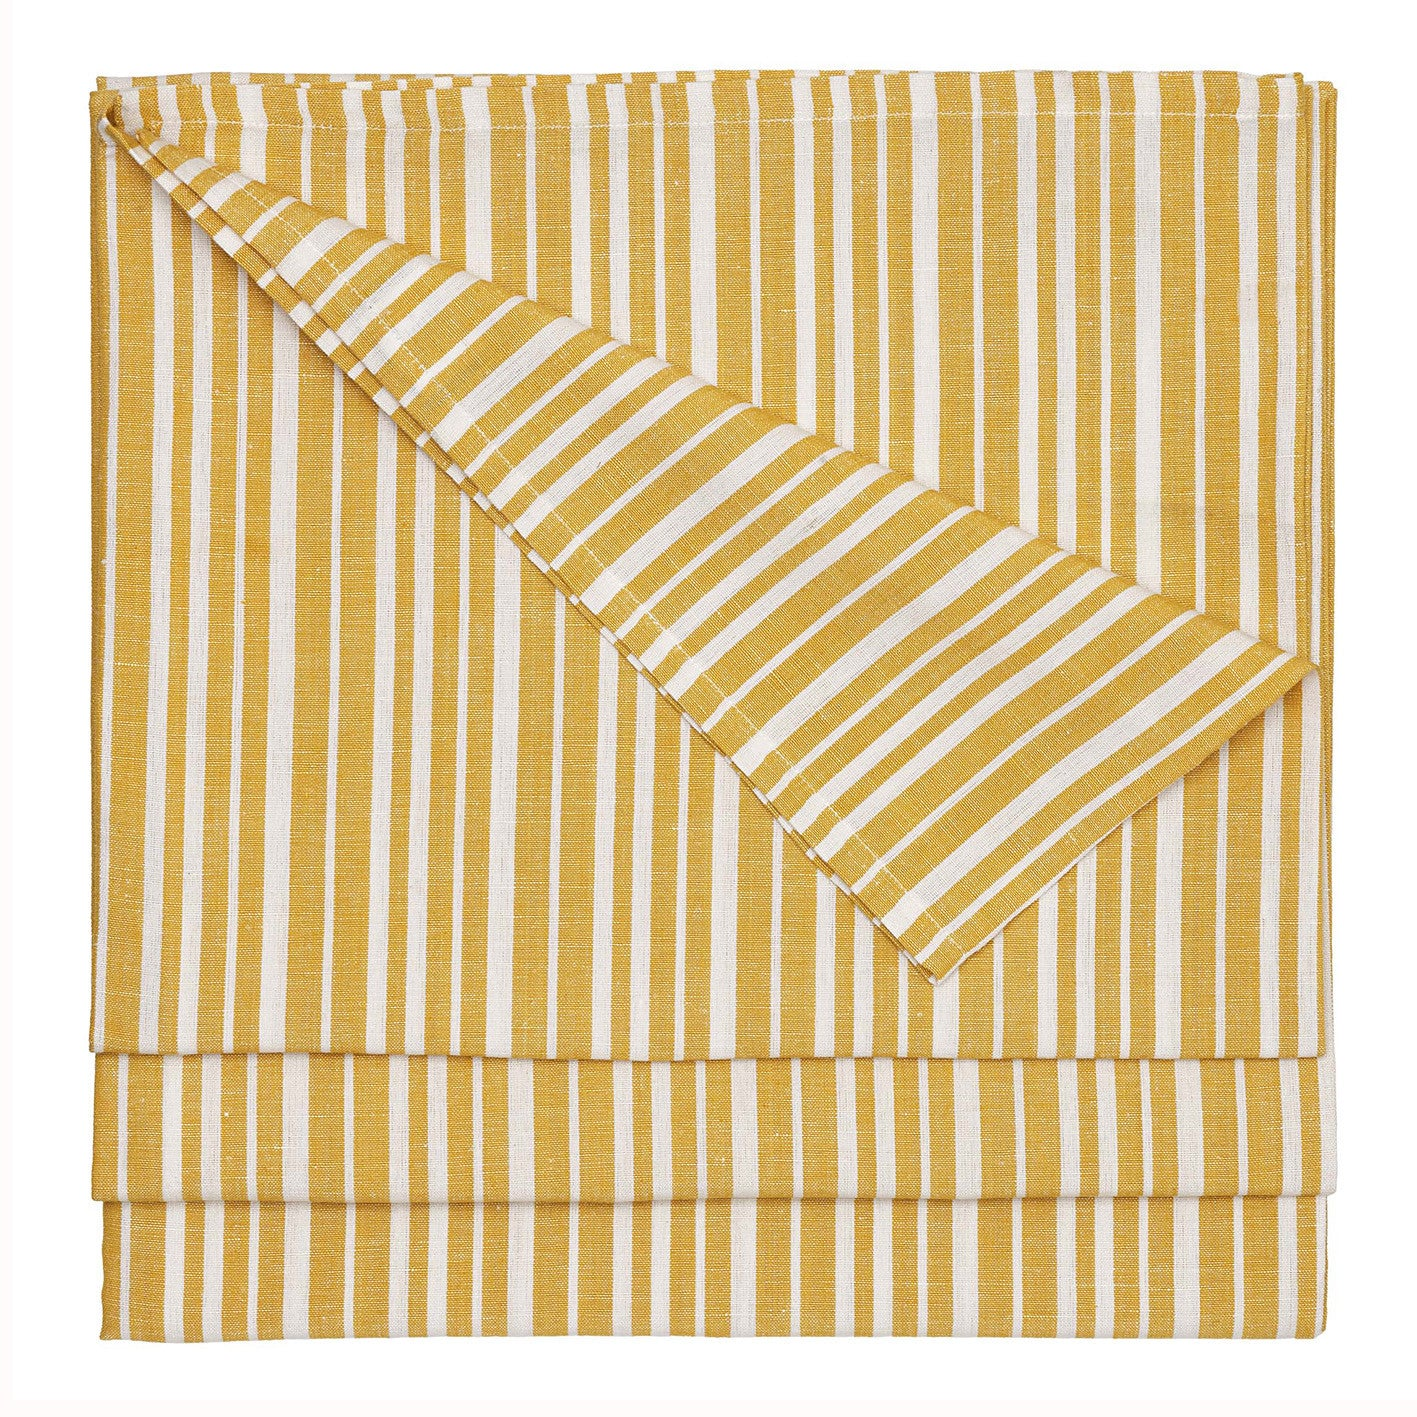 Palermo Ticking Stripe Cotton Linen Tablecloth in Mustard Gold Ships from Canada (USA)